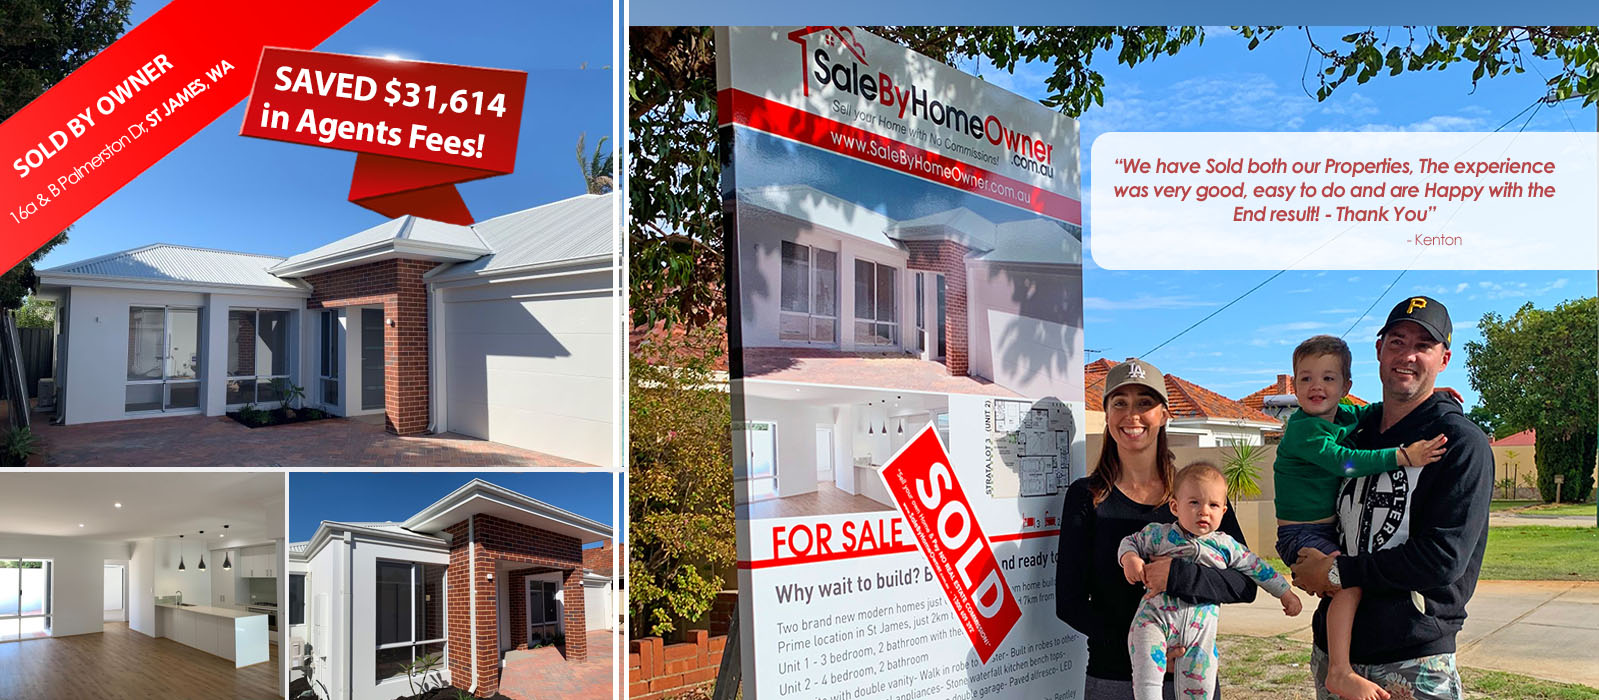 For Sale by owner in WA. View Houses for sale privately in Western Australia